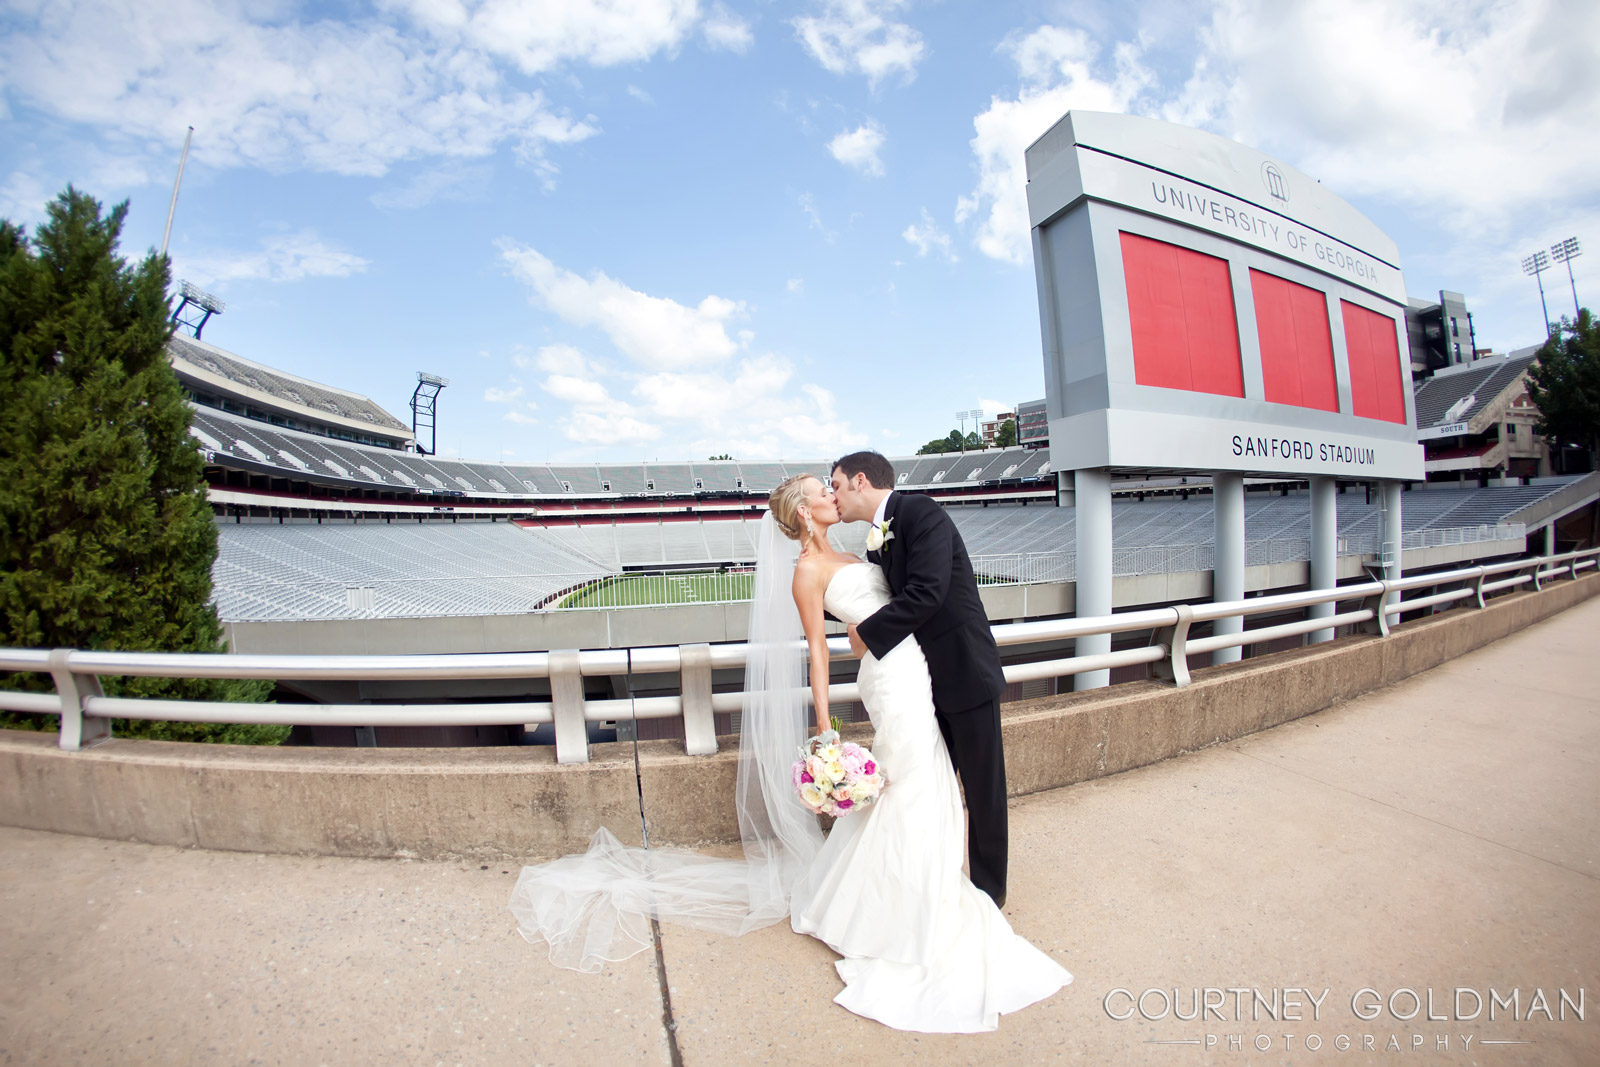 Atlanta-Wedding-Photography-by-Courtney-Goldman-22.jpg